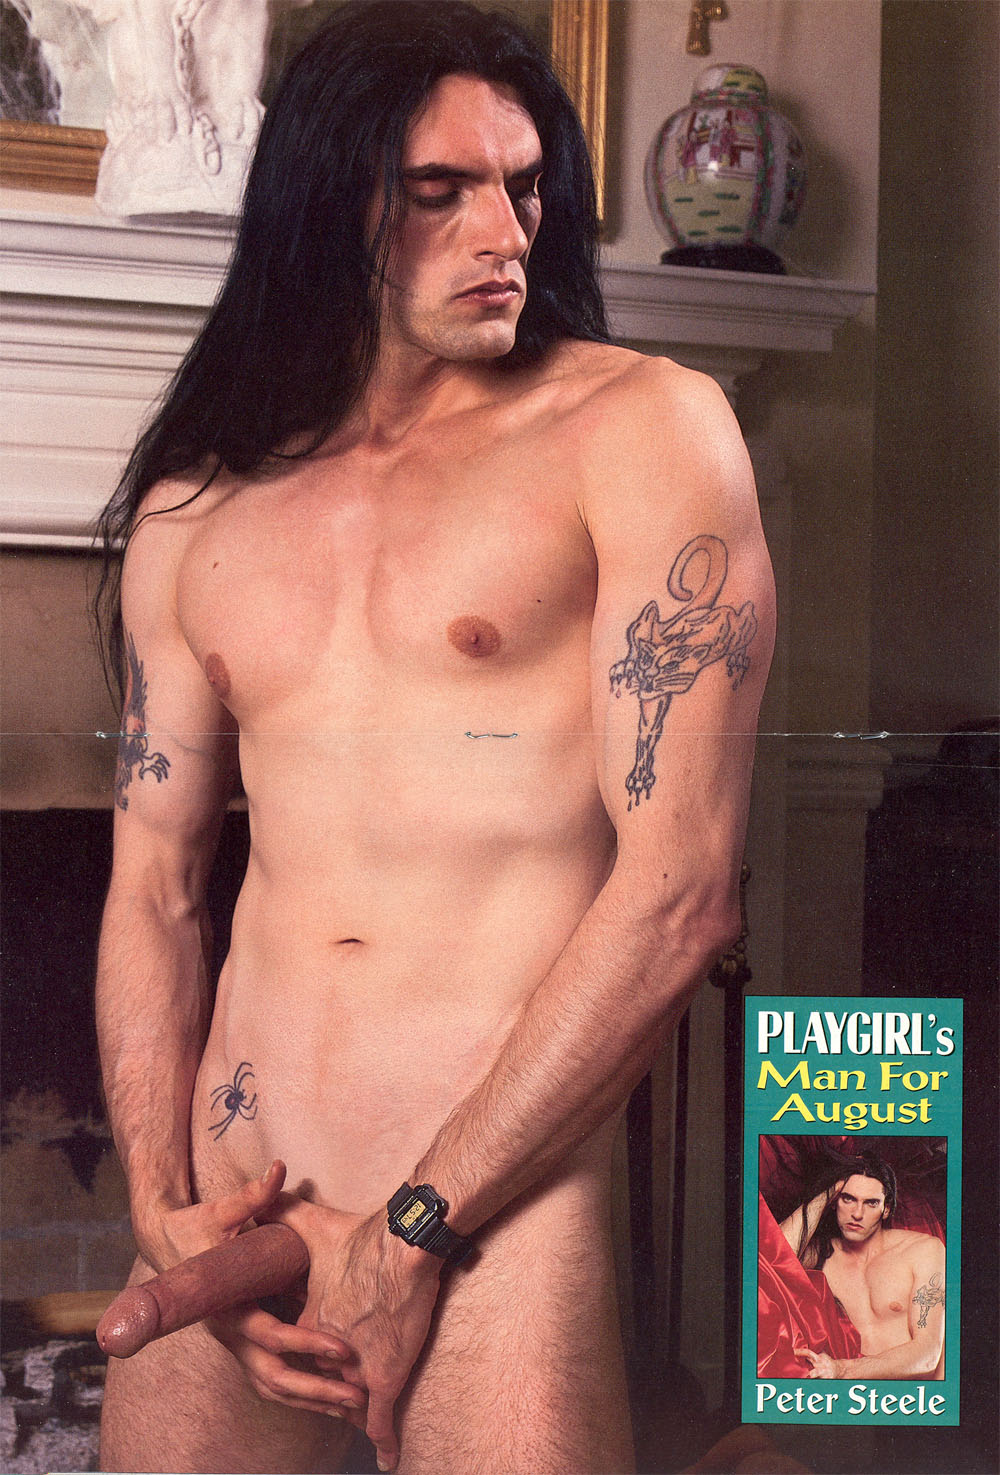 STARS MASCULINES NUES - Peter STEELE nu ! En photos